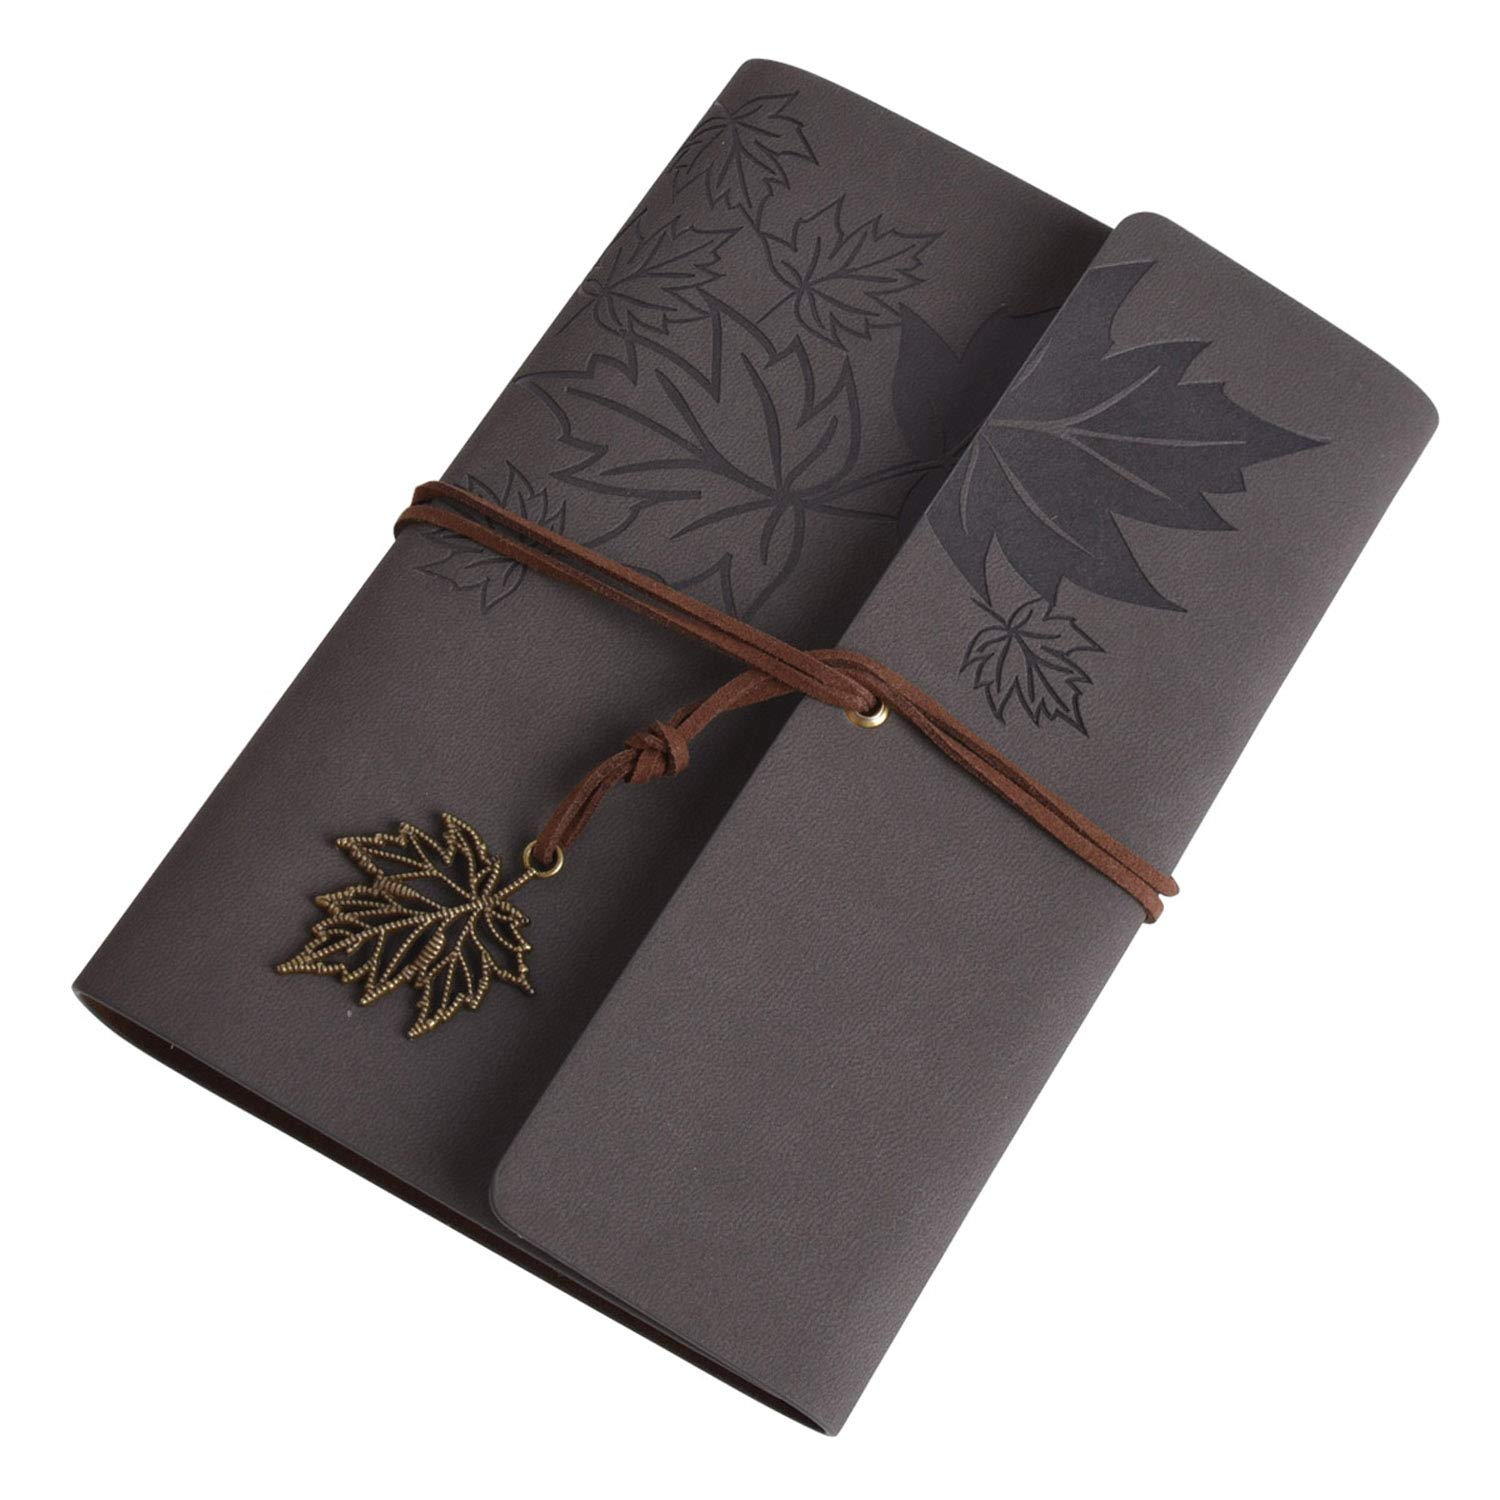 Autoark Leather Writing Journal Notebook, 5 x 7 Inches Classic Maple Leaf Vintage Spiral Bound Notebook Diary Sketchbook, Daily Use Gift For Girls/Boys /Bloggers/Teachers, Skyblue, AHK-044